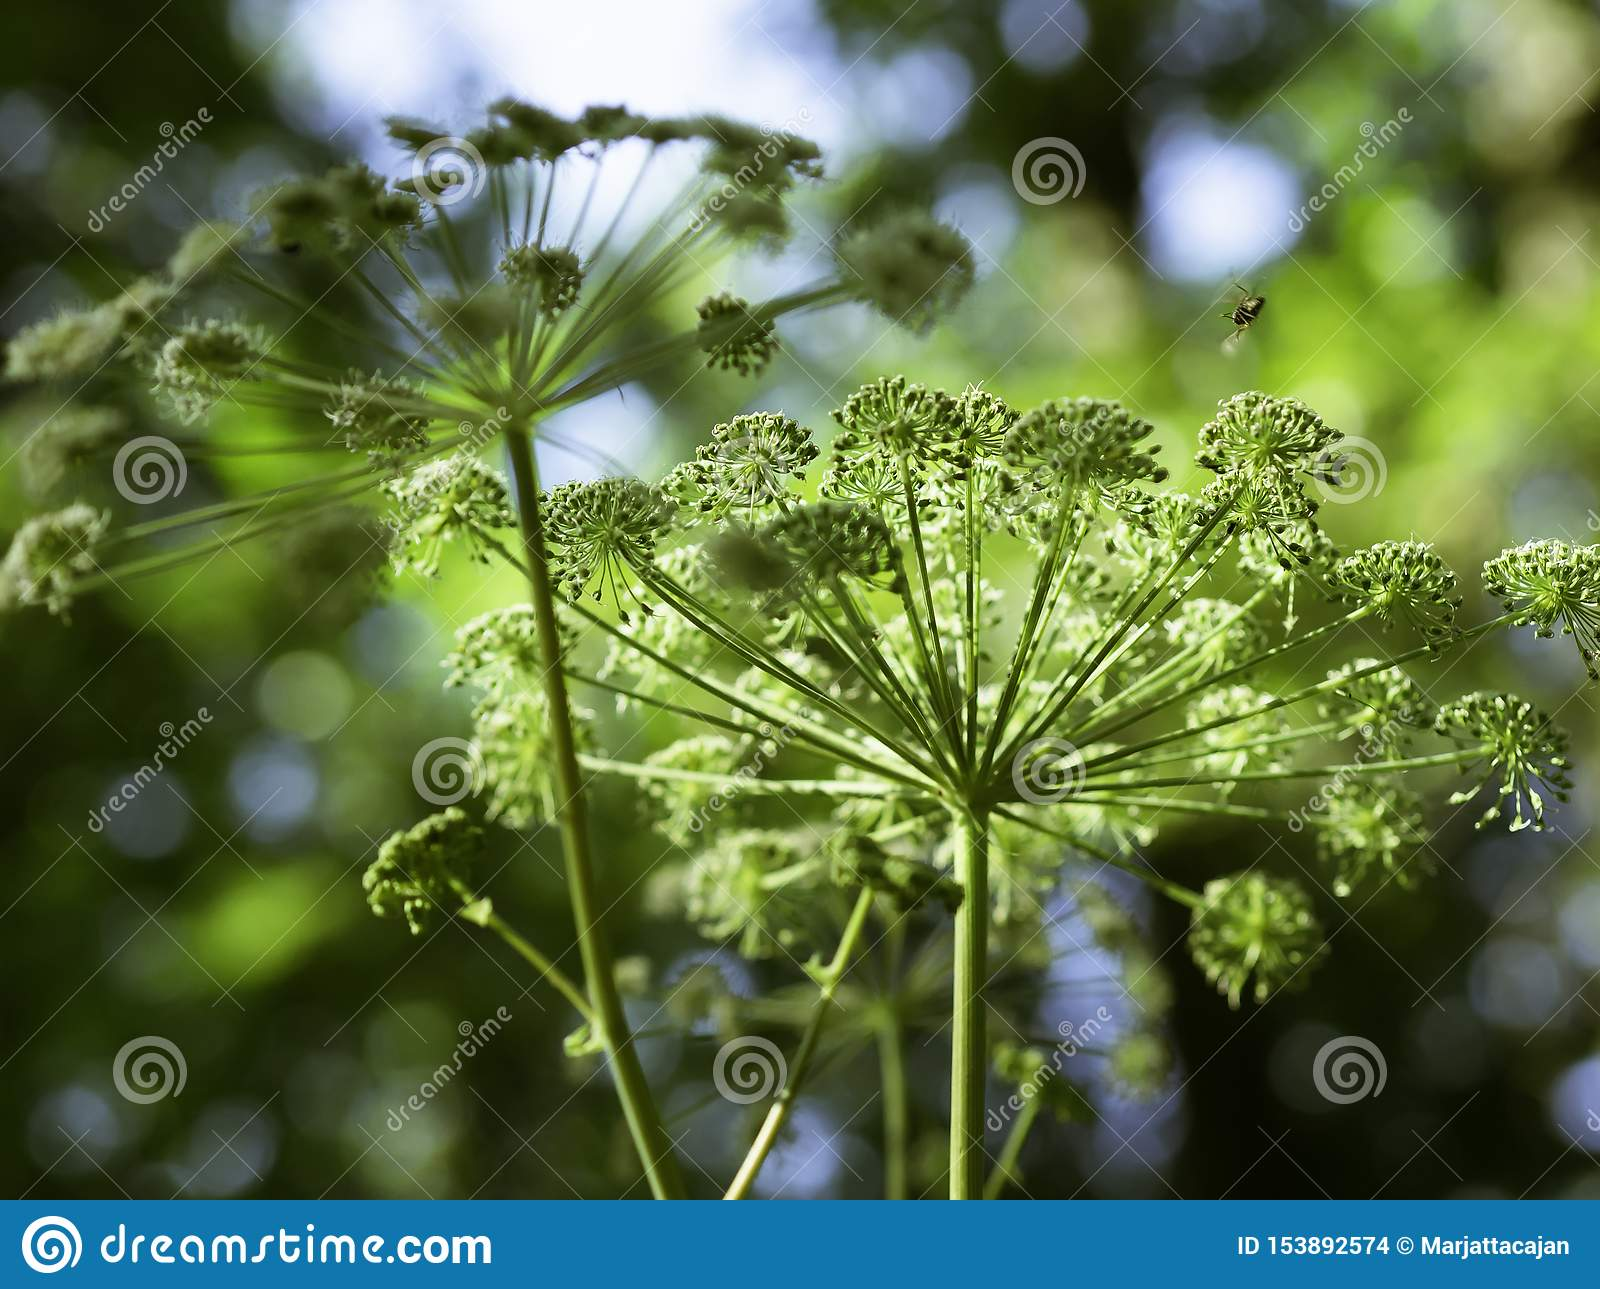 Majestic flowers of angelica blooming